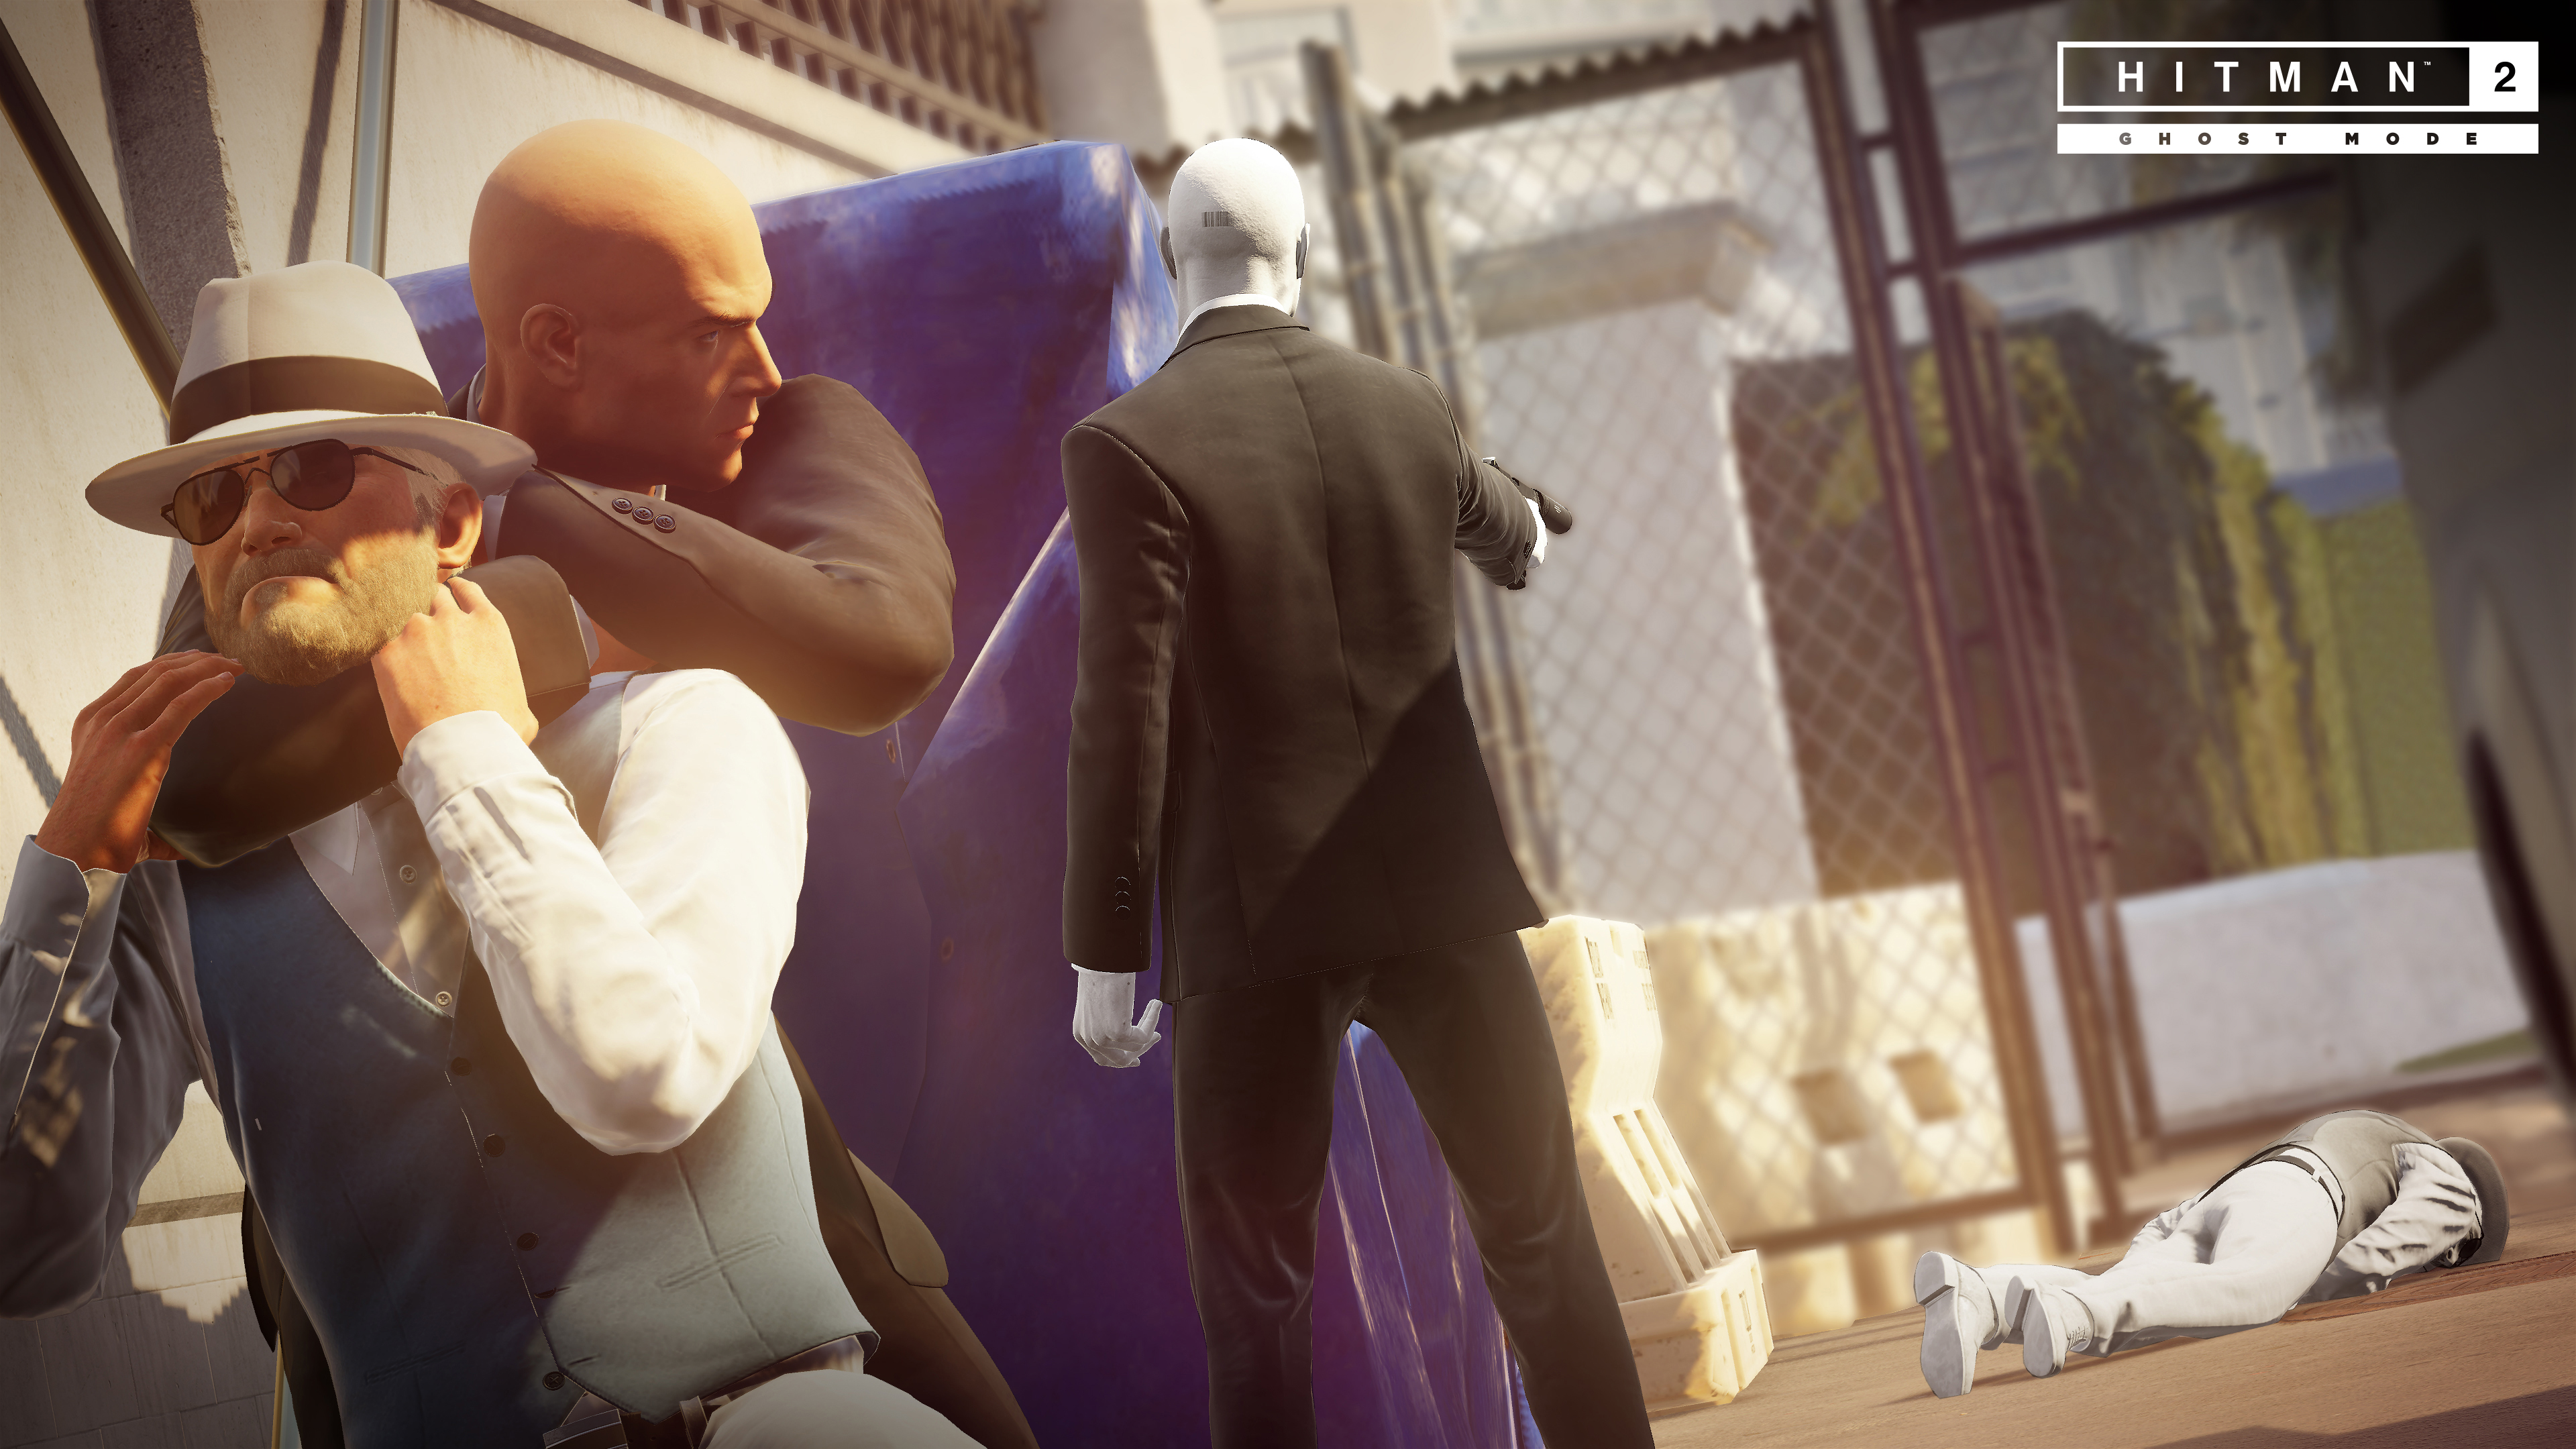 Hitman 2 S Multiplayer Mode Lets You Compete For Silent Kills